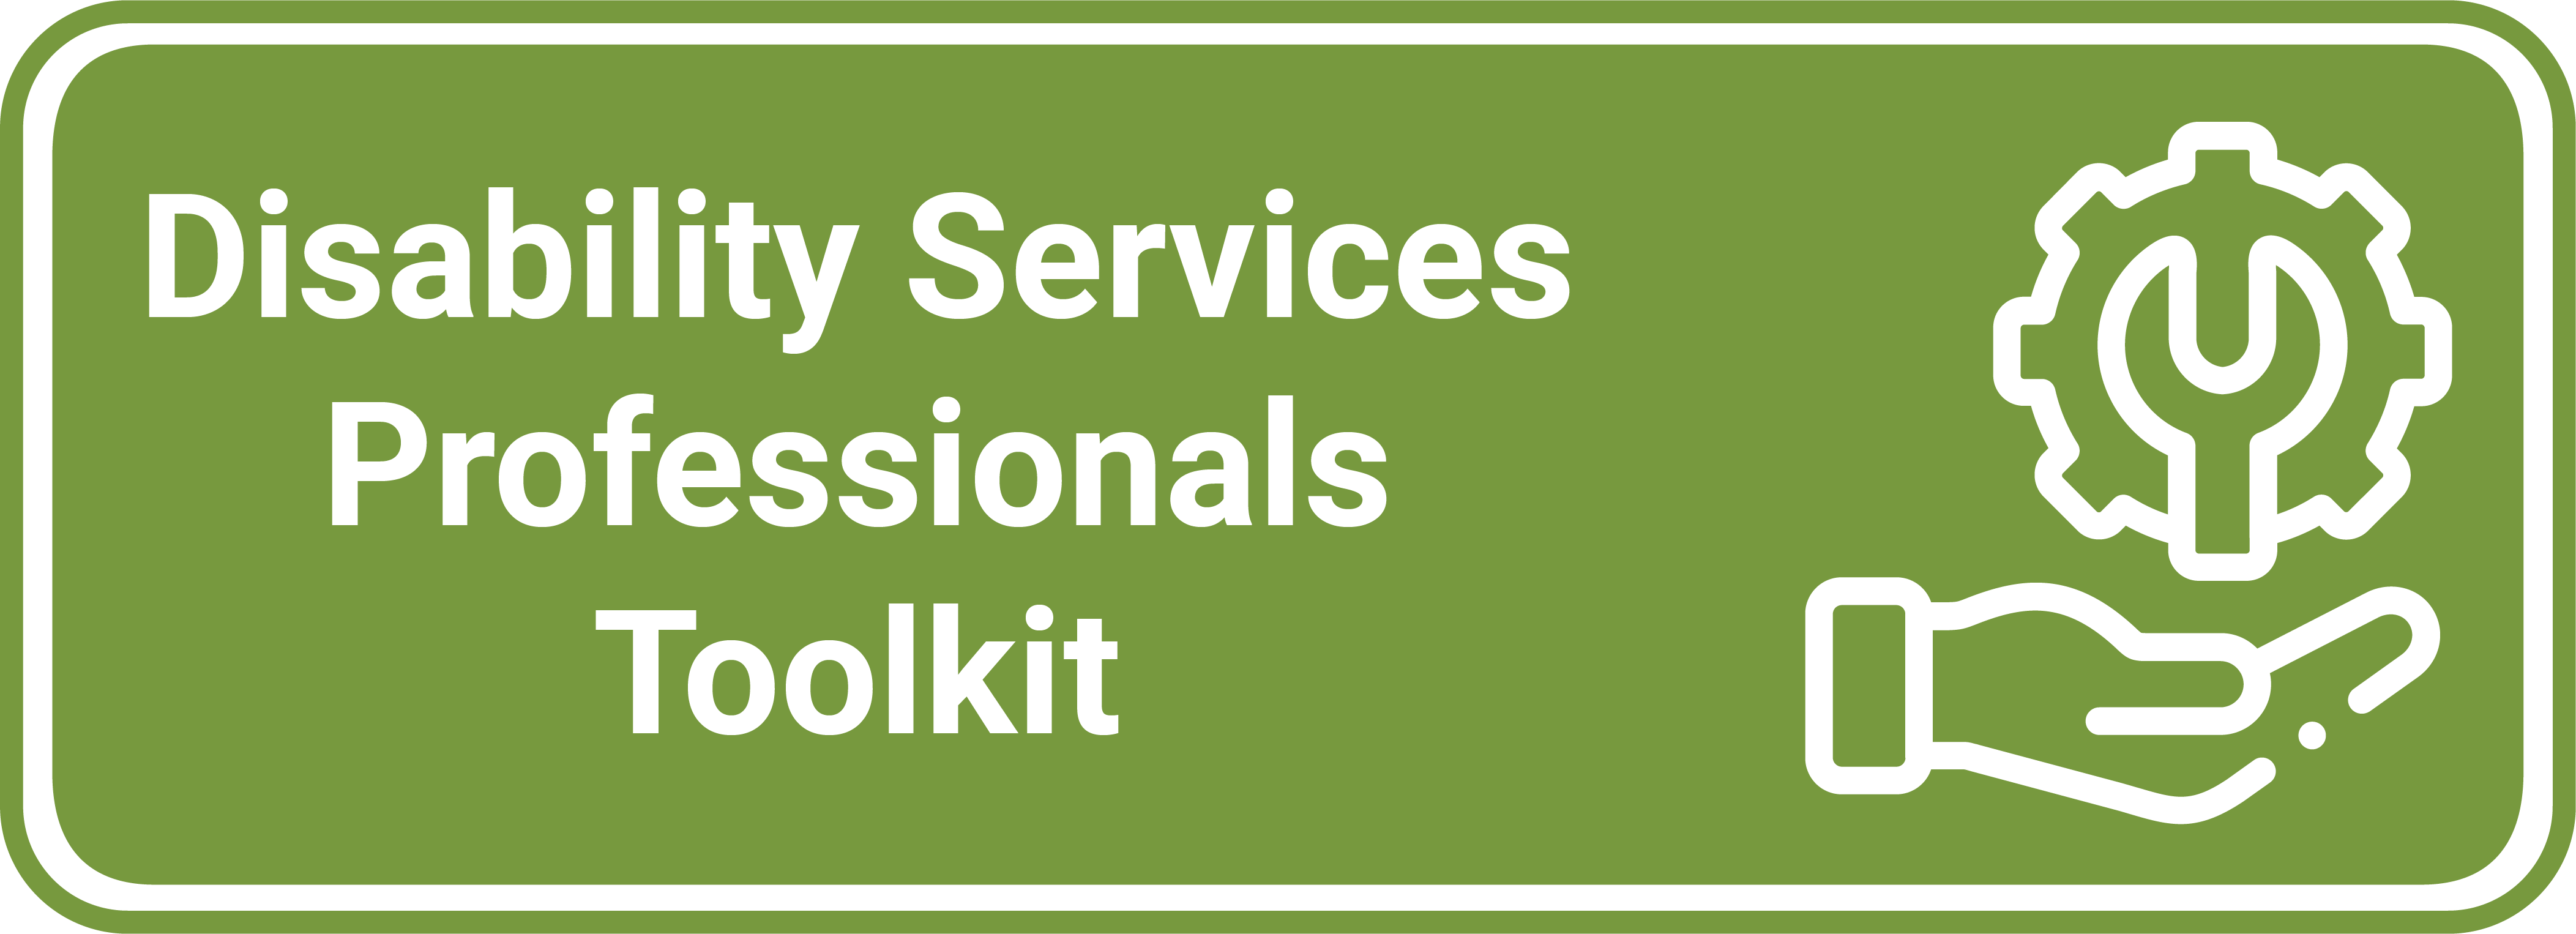 Disability Services Professionals Toolkit